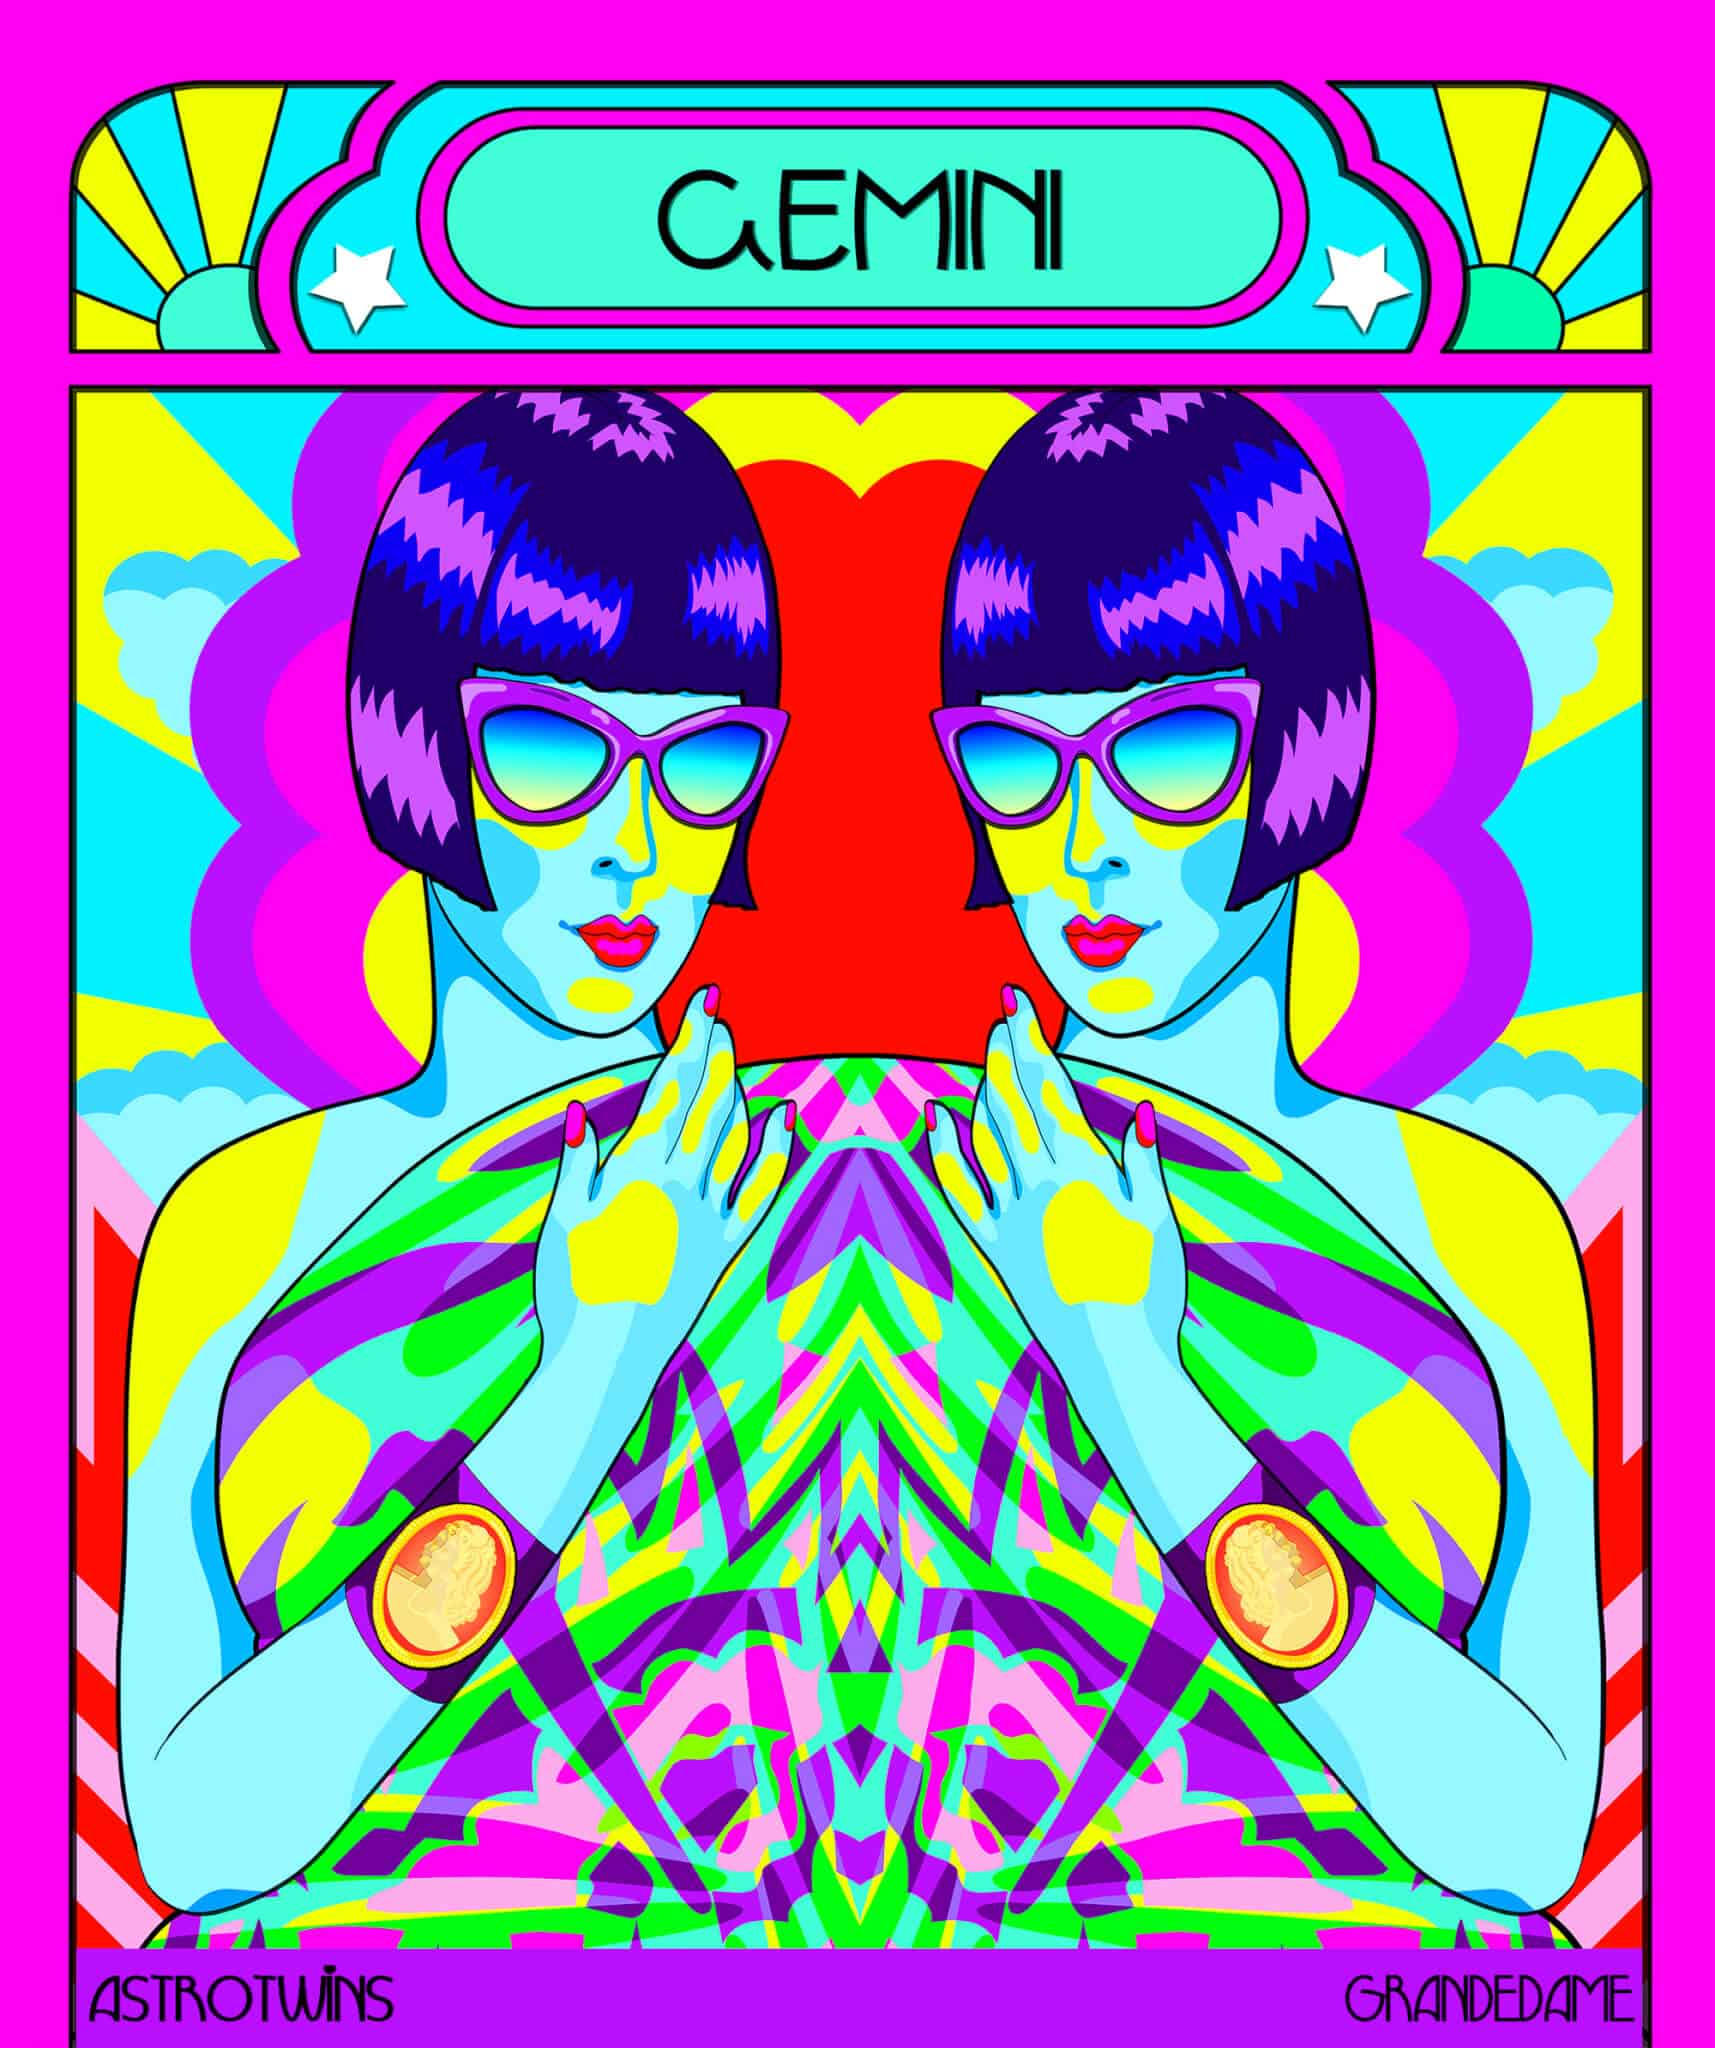 Gemini season artwork by Grande Dame for the AstroTwins on Astrostyle.com